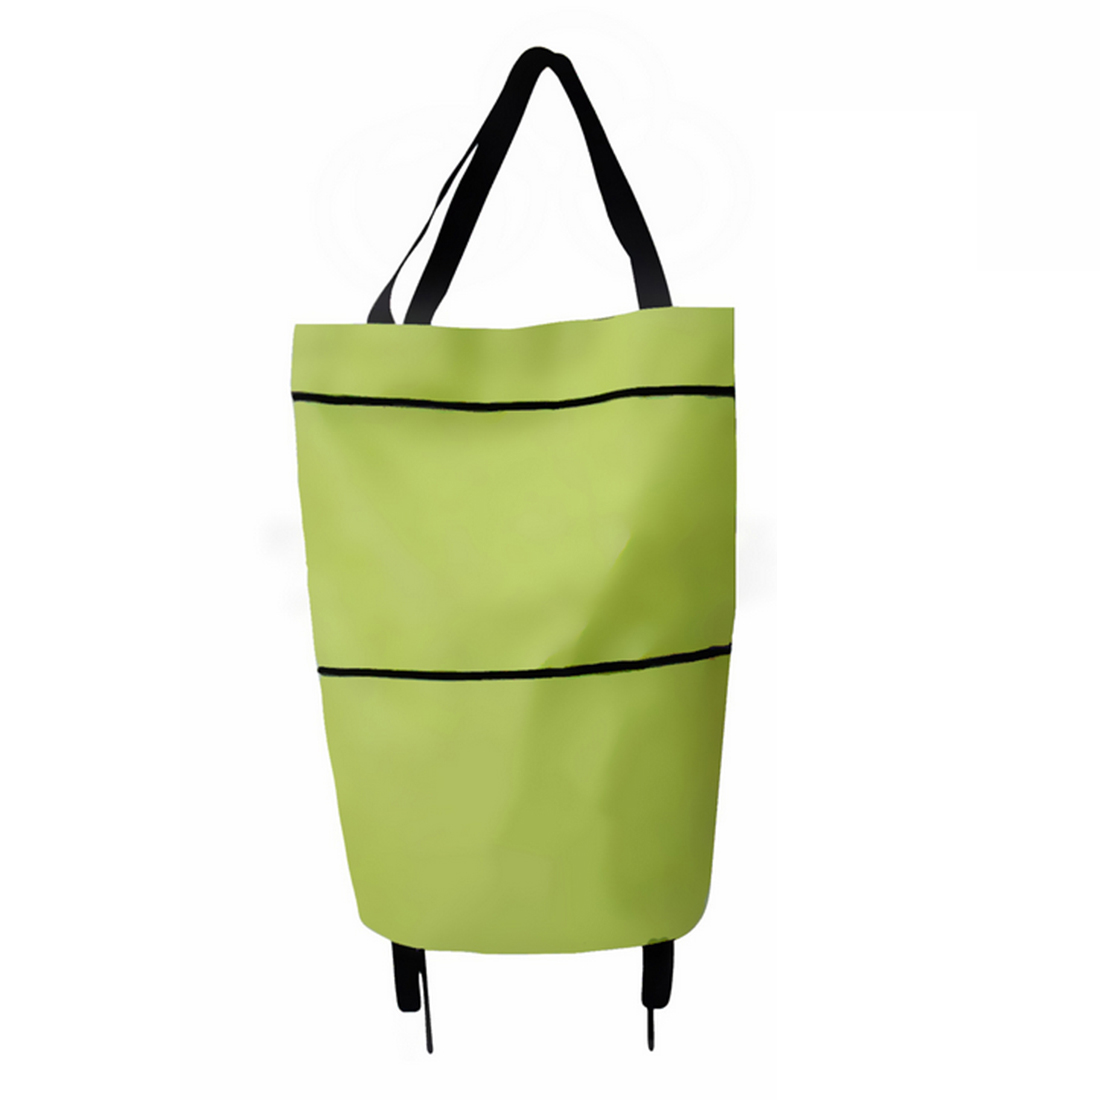 HIPSTEEN 1pcs Multifunctional Foldable Rolling Shopping Bags Tugboat Luggage Bag With Wheels Home Travel Household Accessories